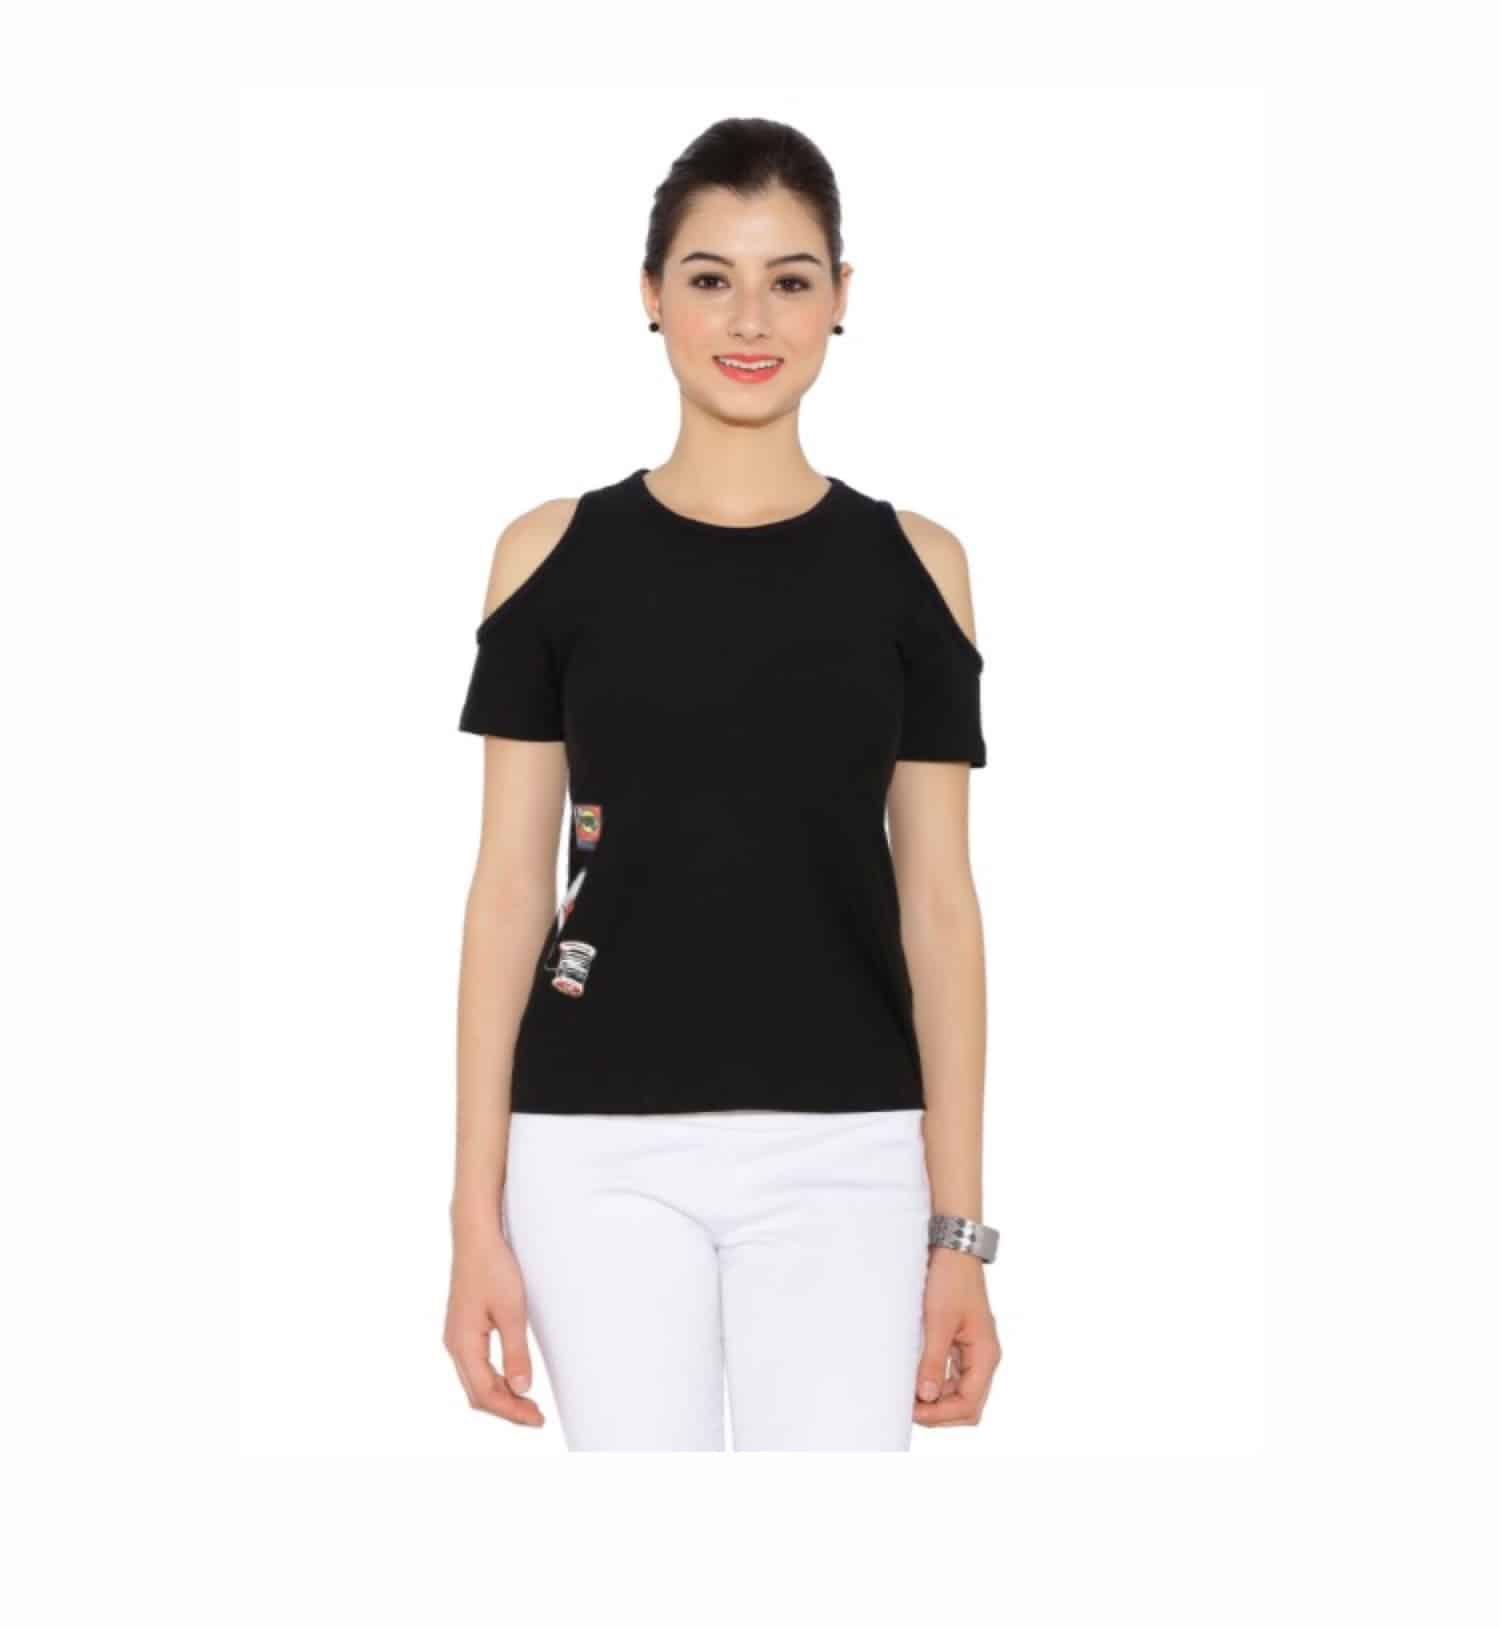 Flat 20% off Use Code -- SUMMER20           After Discount ## ₹560 only                           #blacktop #blackootd #coldshouldertop #trendyclothes #onlineshop #onlineshoppinginindia